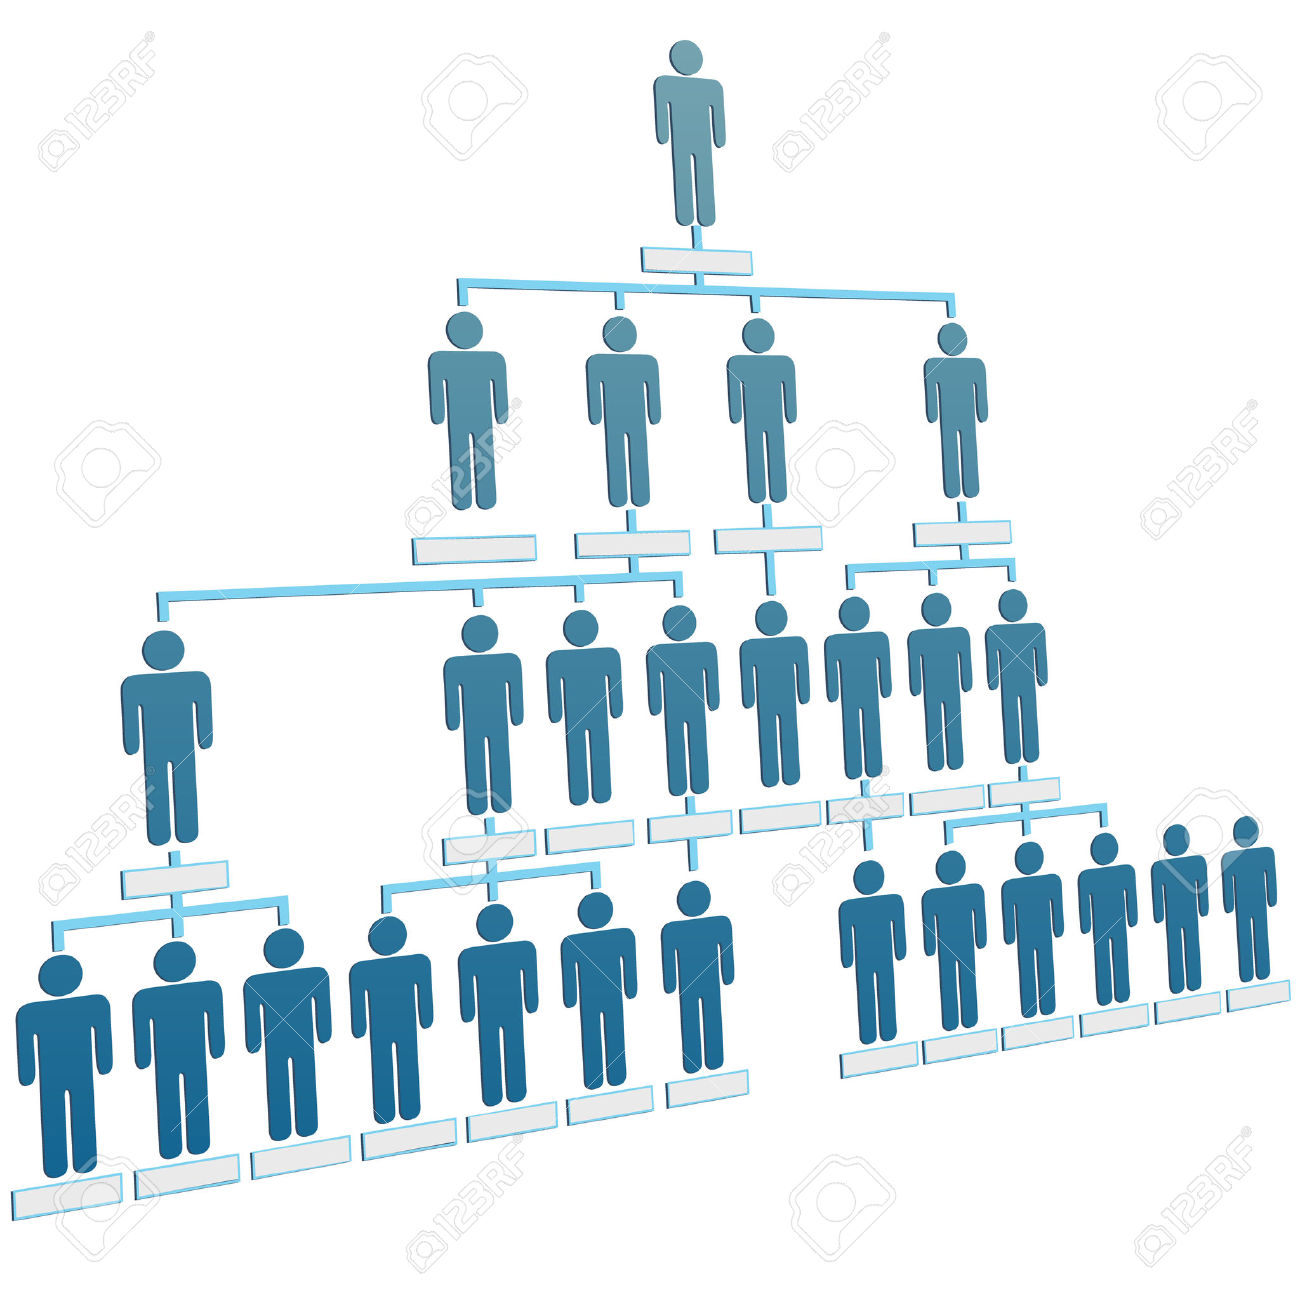 Company structure clipart.